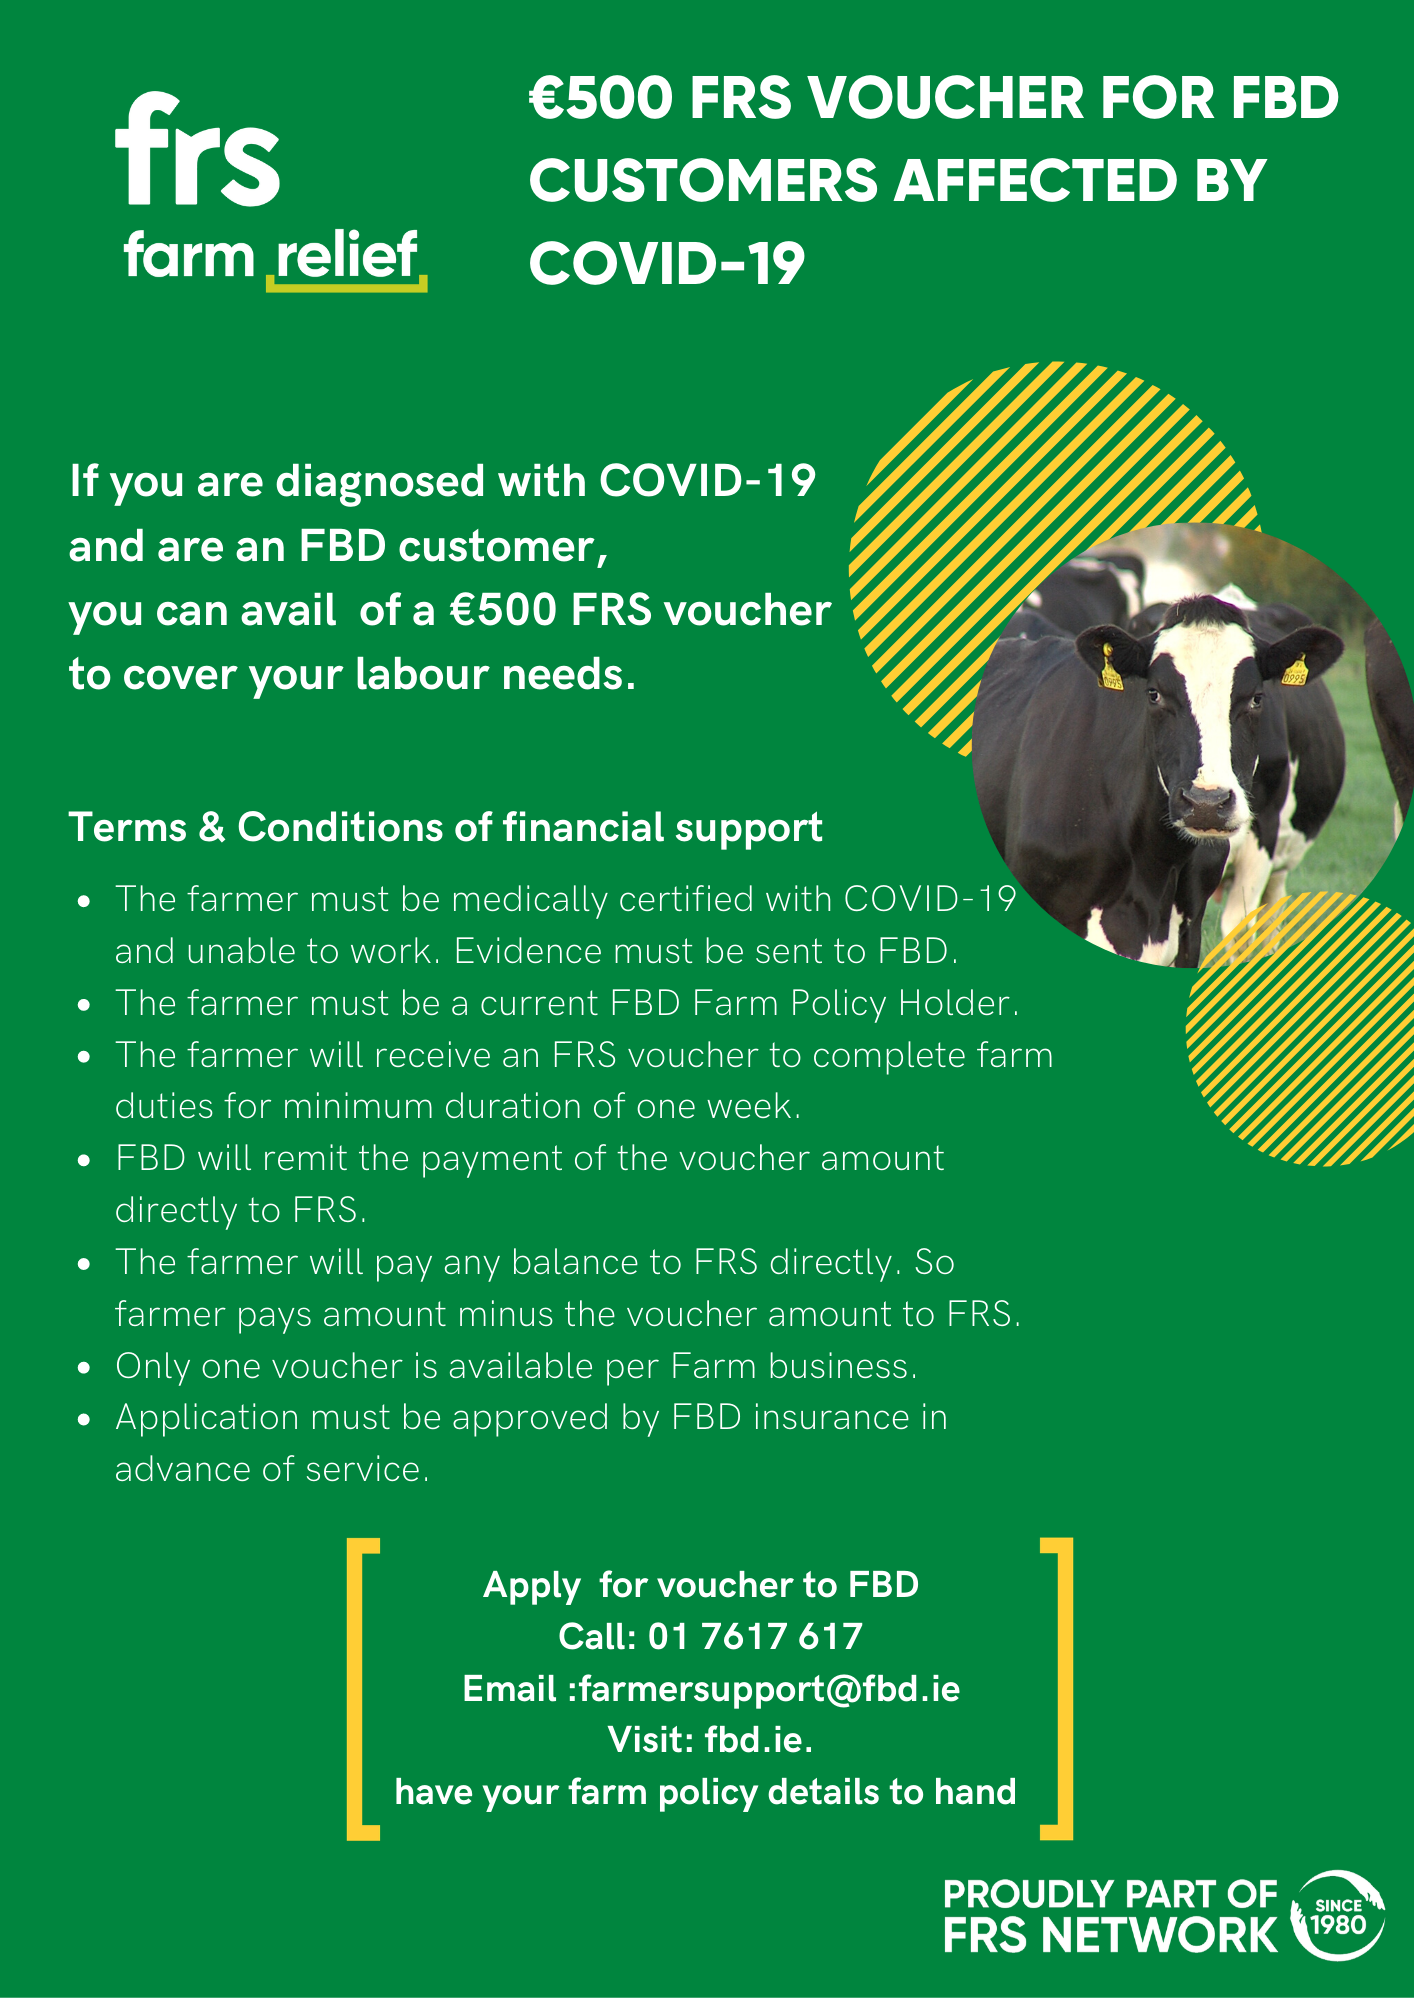 FRS voucher for FBD Customers Affected by Covid 19